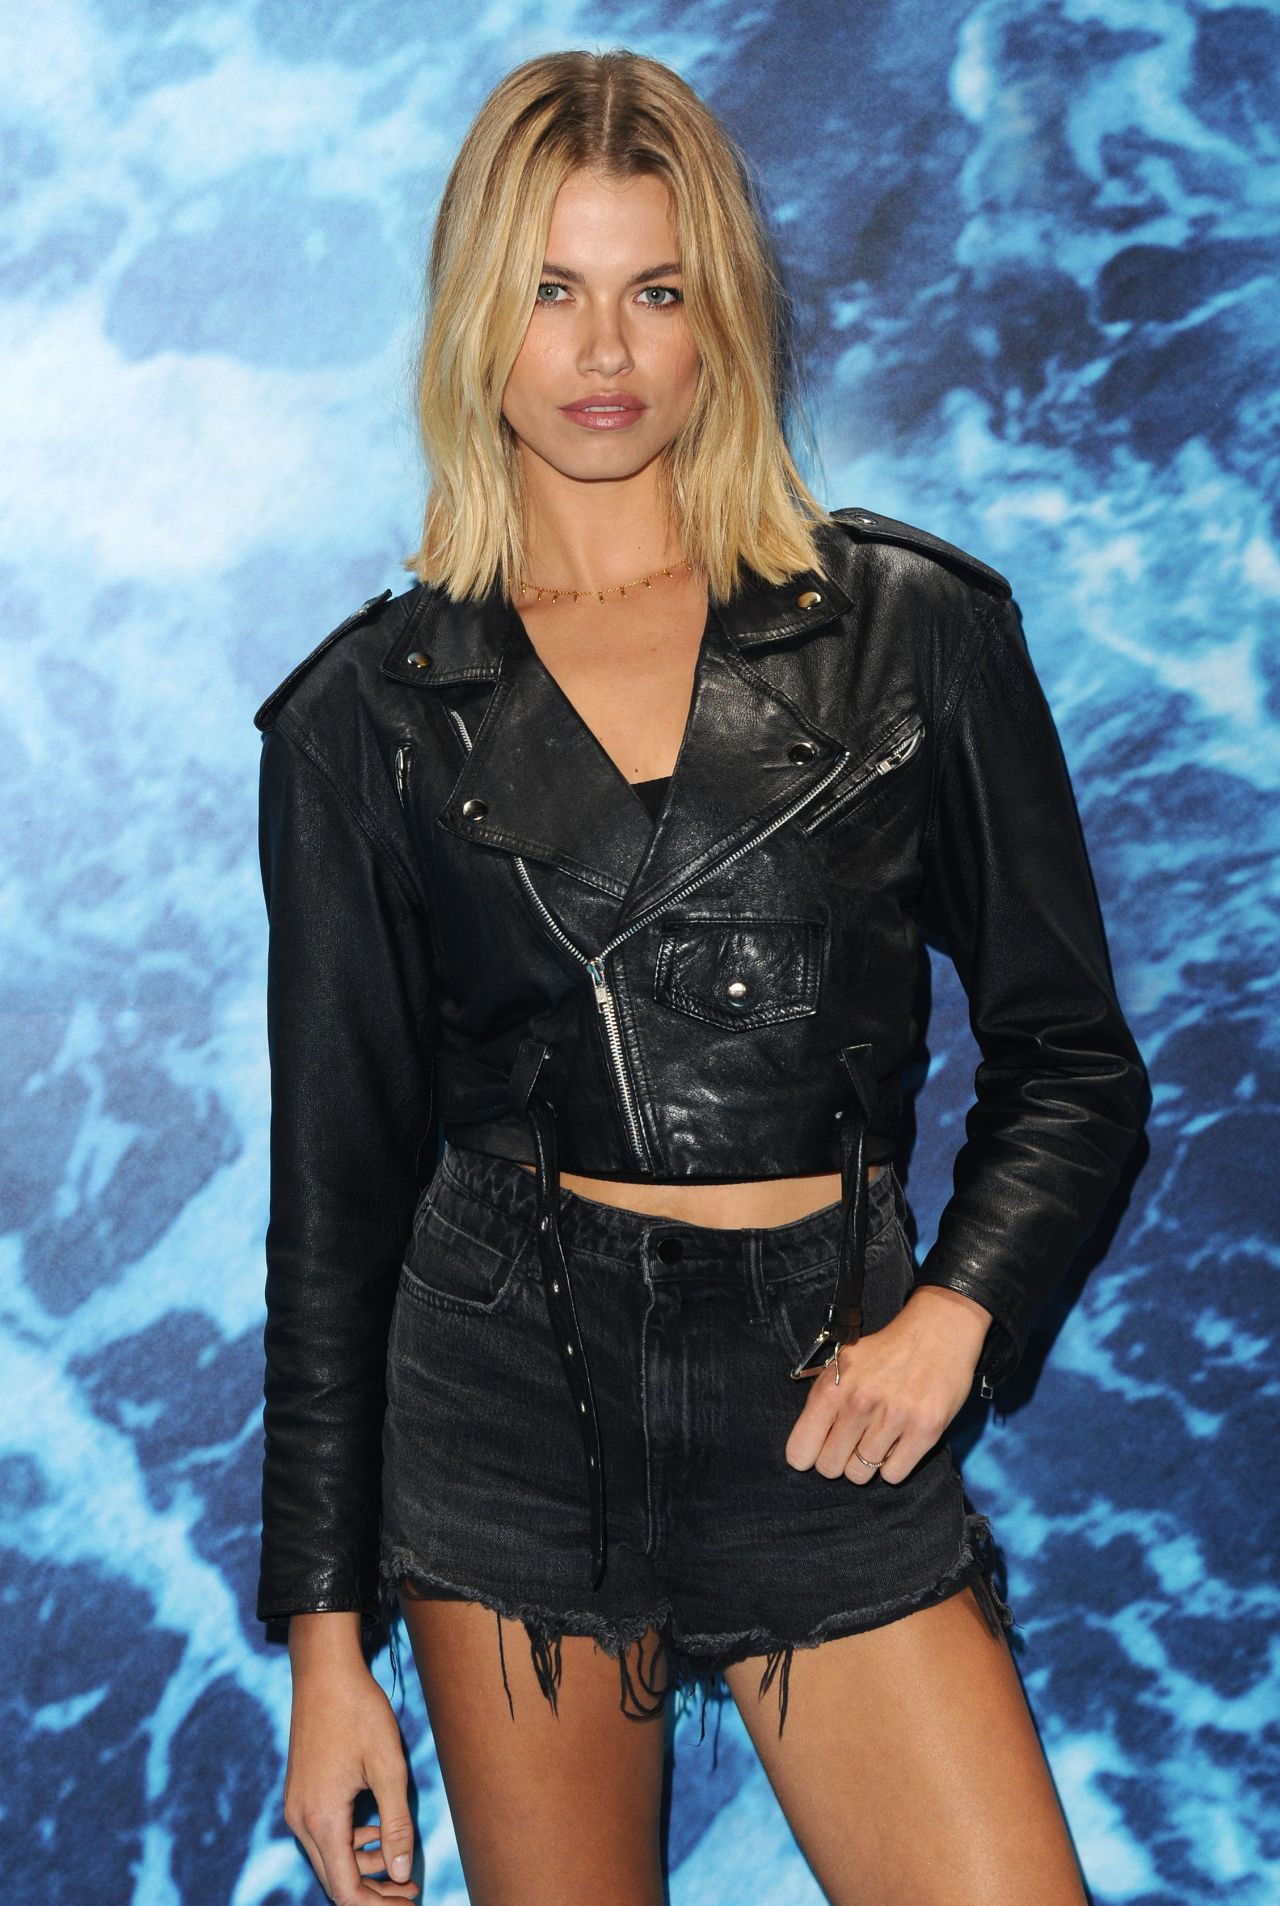 hailey-clauson-ugg-40-years-anniversary-celebration-in-la-10-04-2018-6.jpg